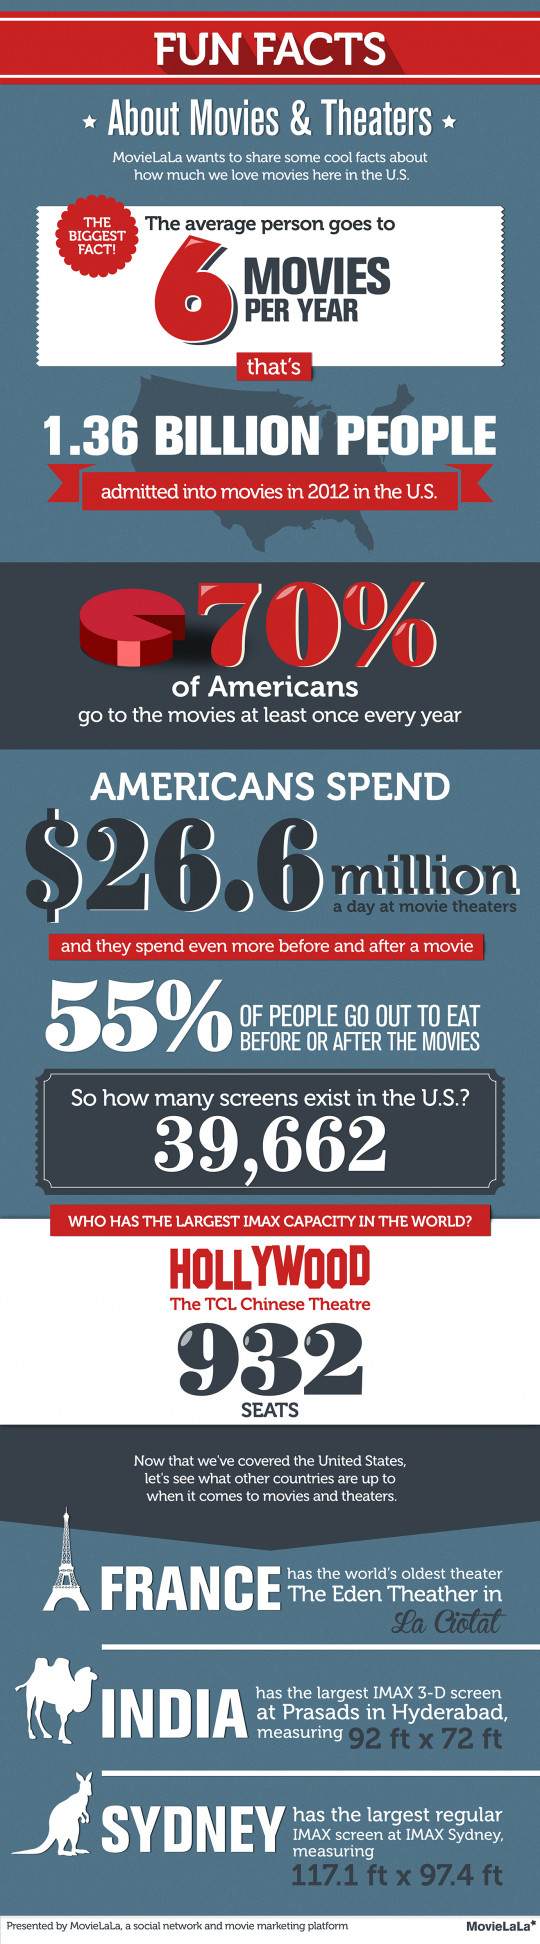 Fun Facts About Movies & Theaters